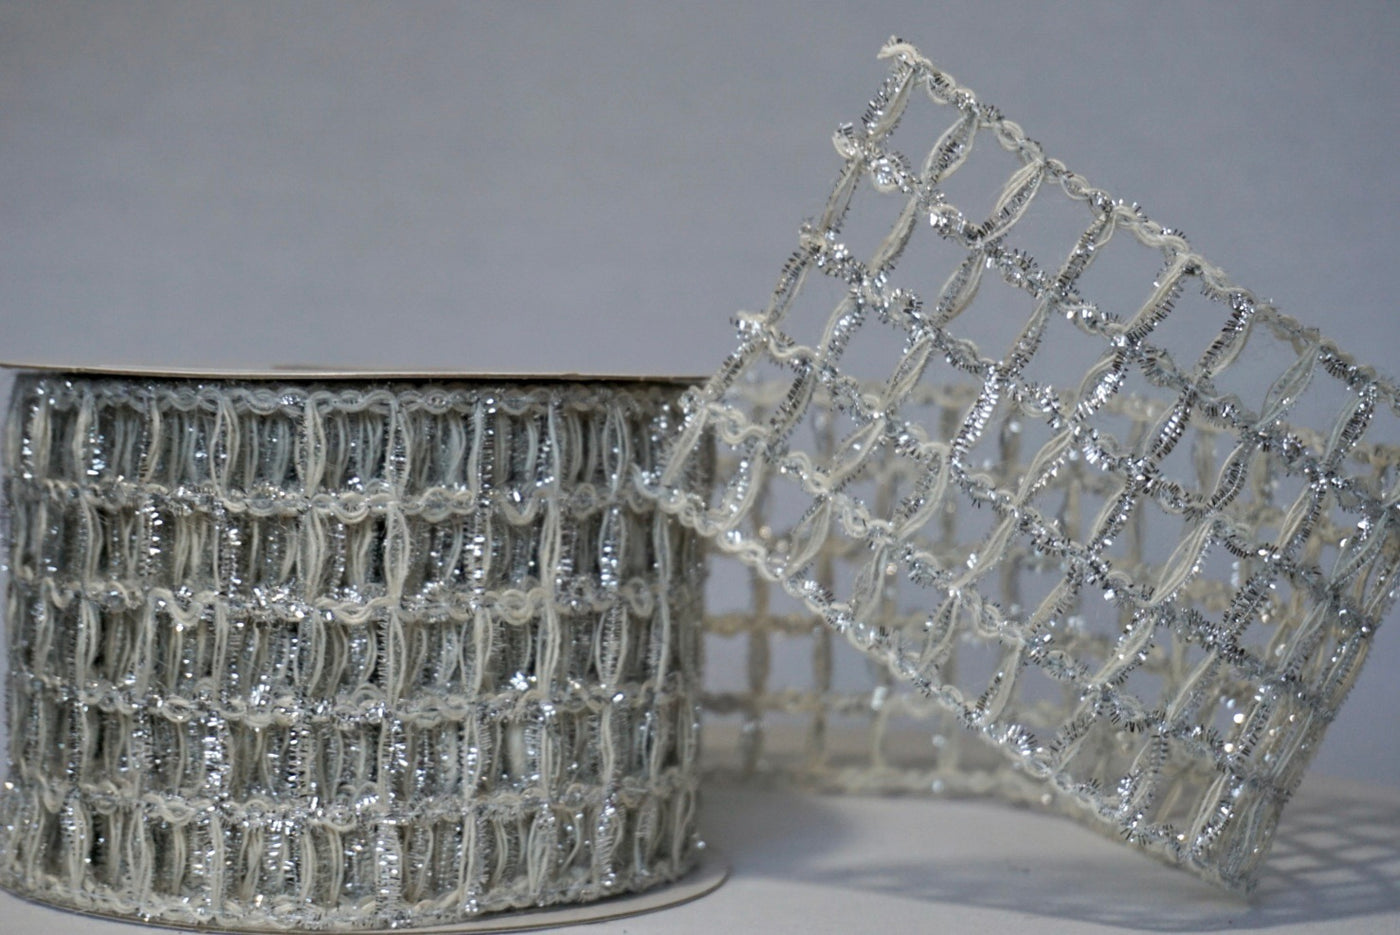 Sparkled Silver Jute Ribbon